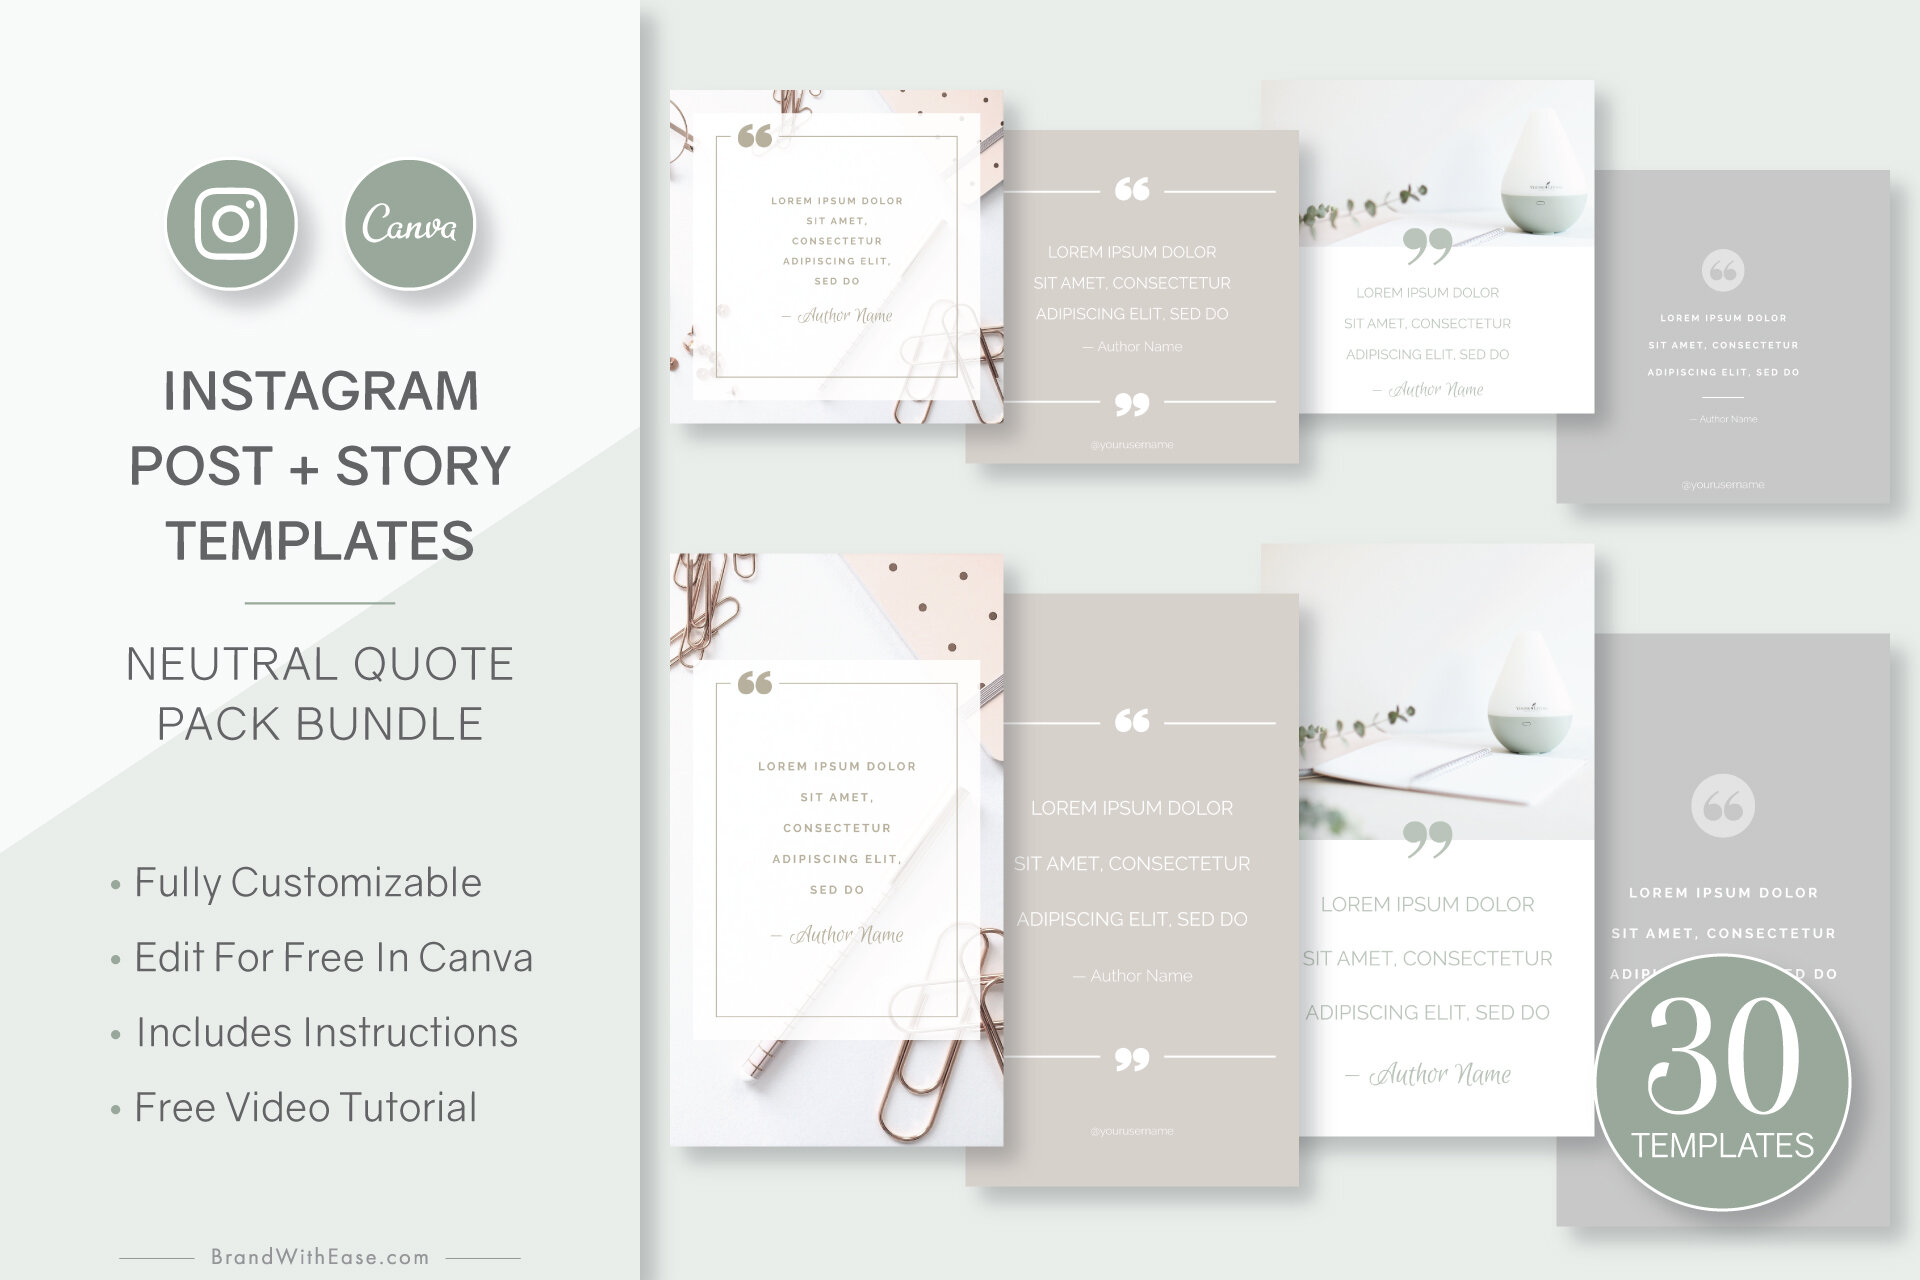 Neutral Quote Pack Bundle - 30-pc Canva Template Collection for Instagram Posts + Stories ($22 value)Learn More →